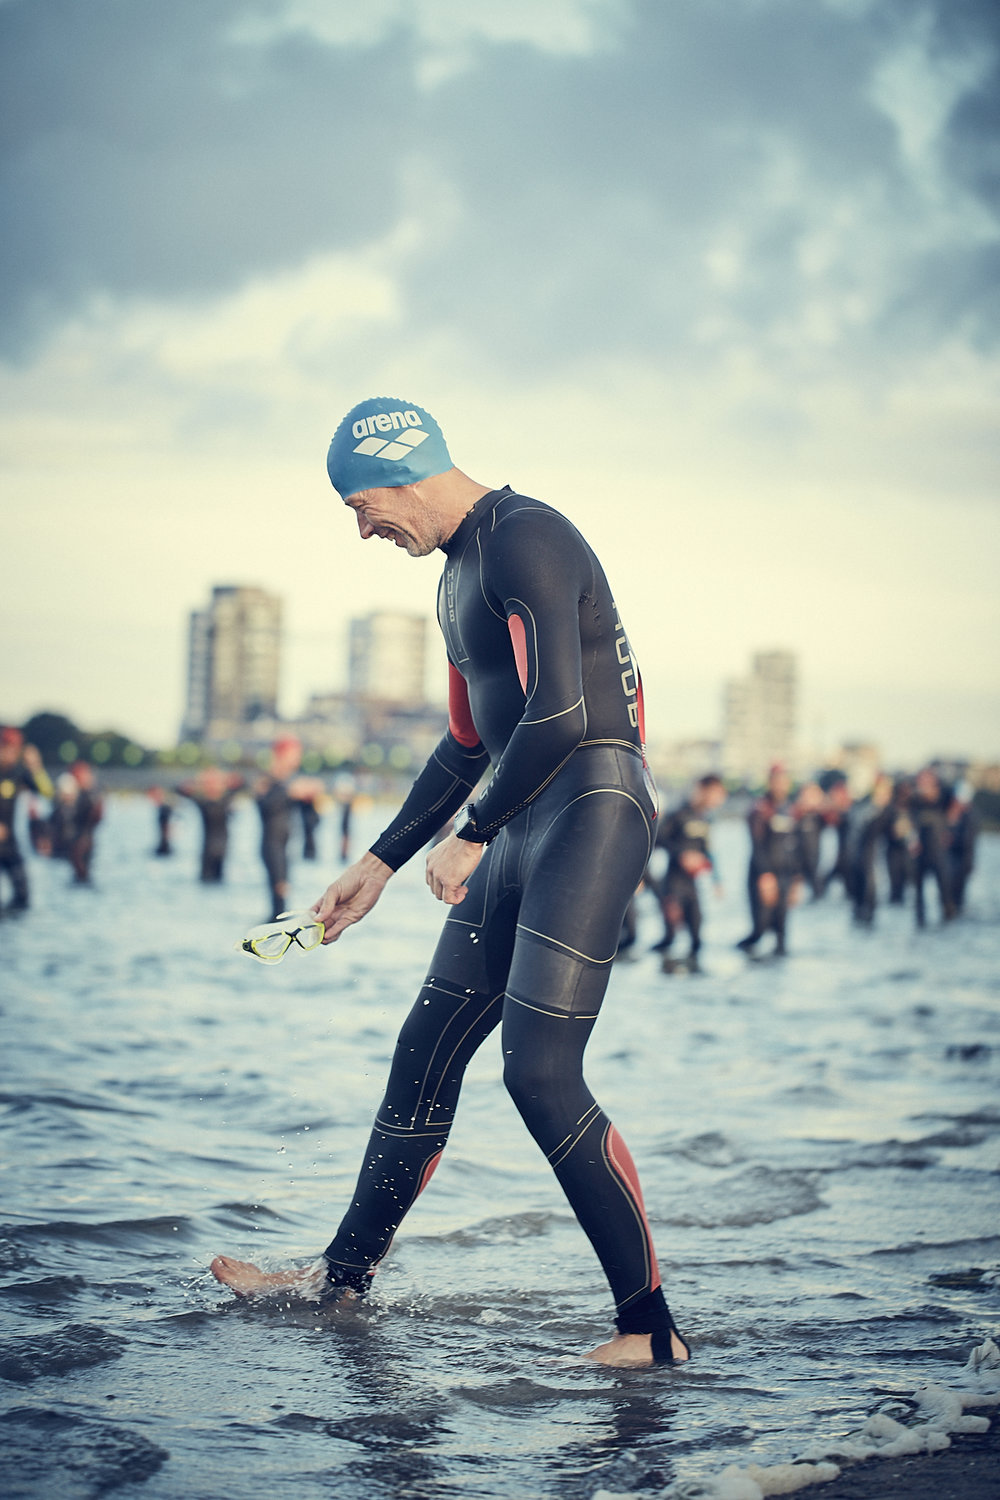 Ironman_48_Aug 20 2017, Anders Brinckmeyer.jpg